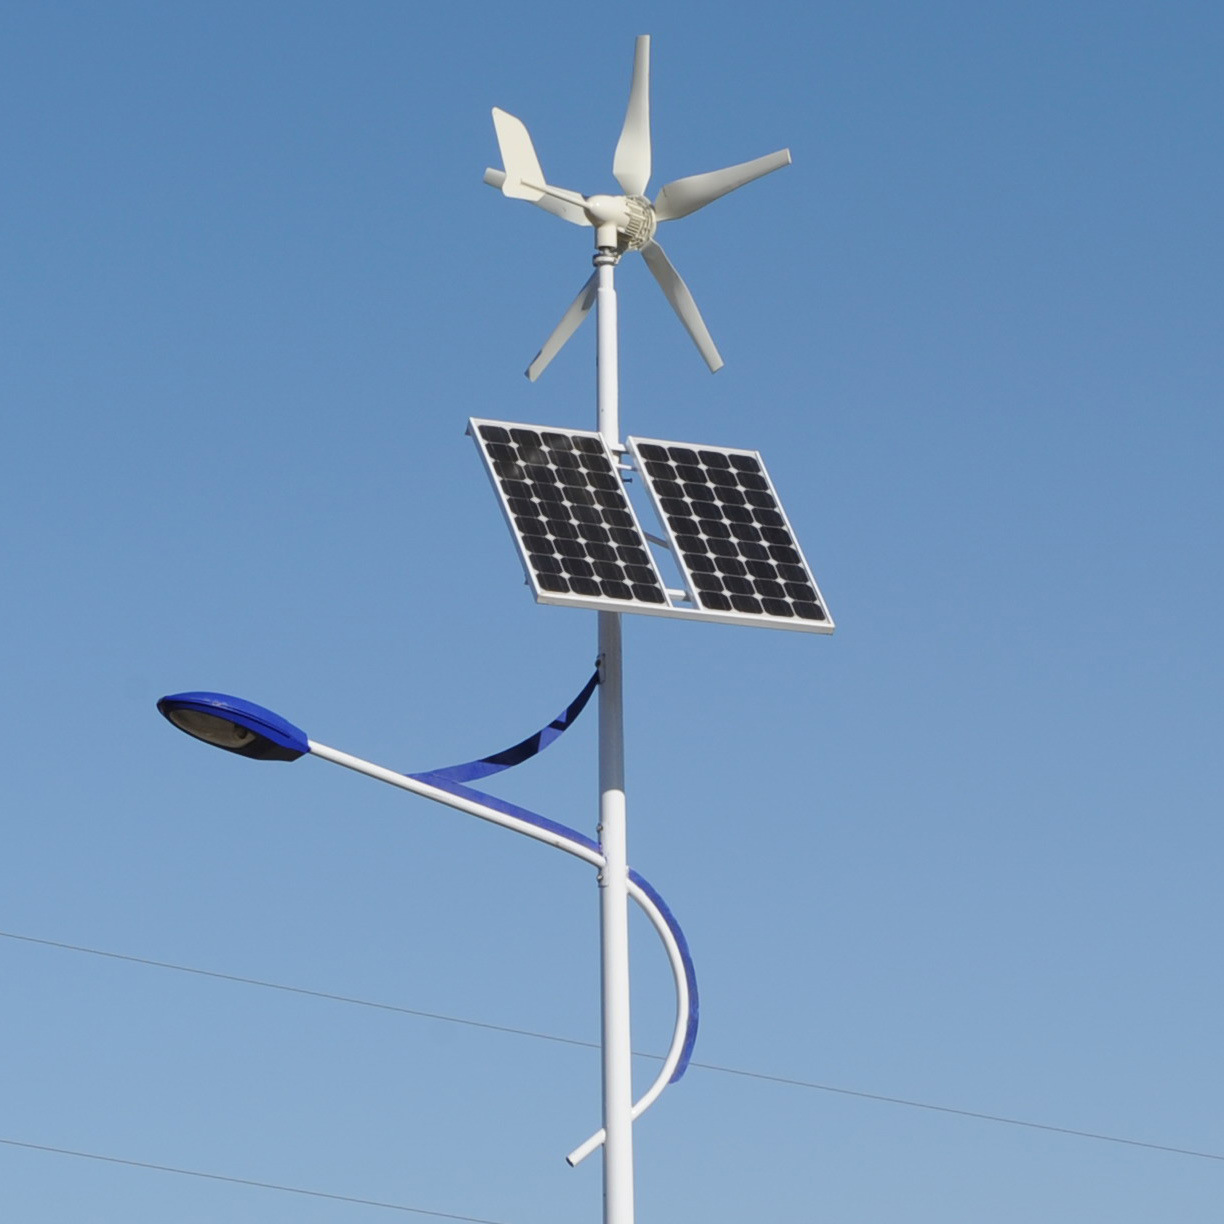 maglev wind turbine and solar panel for streetlight 300w-100kw maglev vertical axis wind turbine (maglev vawt) widely apply to street light for city or rural area, off-grid power systems for family villa if some day there is sunlight but without the wind energy, the solar panel charge the battery.